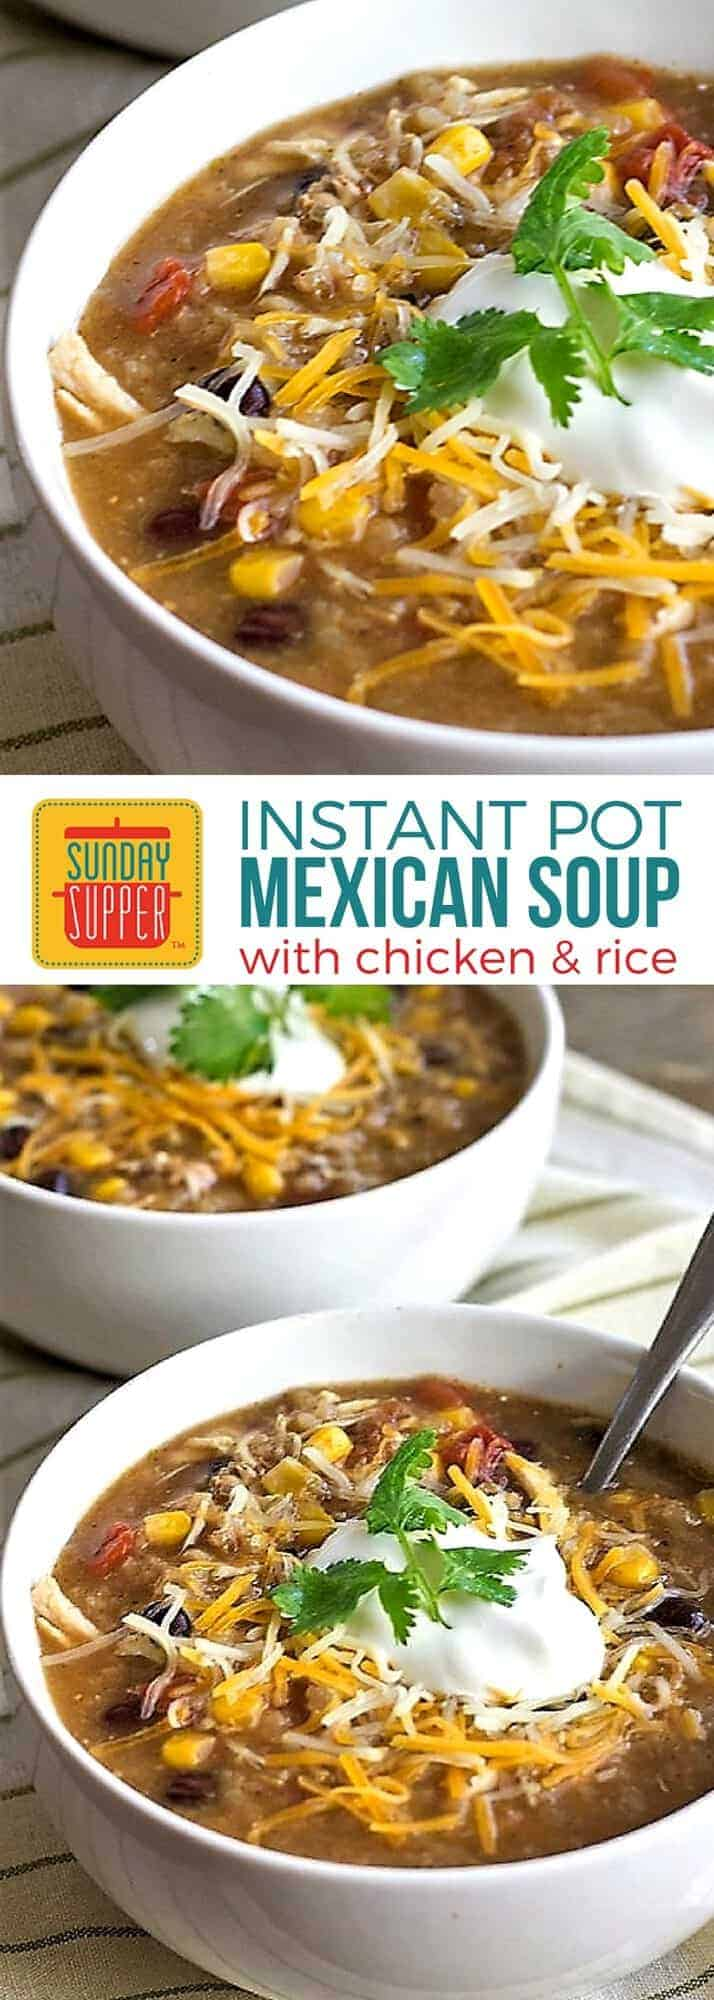 Like a taco in a bowl! The southwestern flavors in our Instant Pot Mexican Chicken and Rice Soup will warm you up and satisfy your taste buds too! A delicious dinner that's easy to make and sure to become one of your family's favorite comfort food soup recipes! #SundaySupper #ComfortFoodRecipes #SoupRecipe